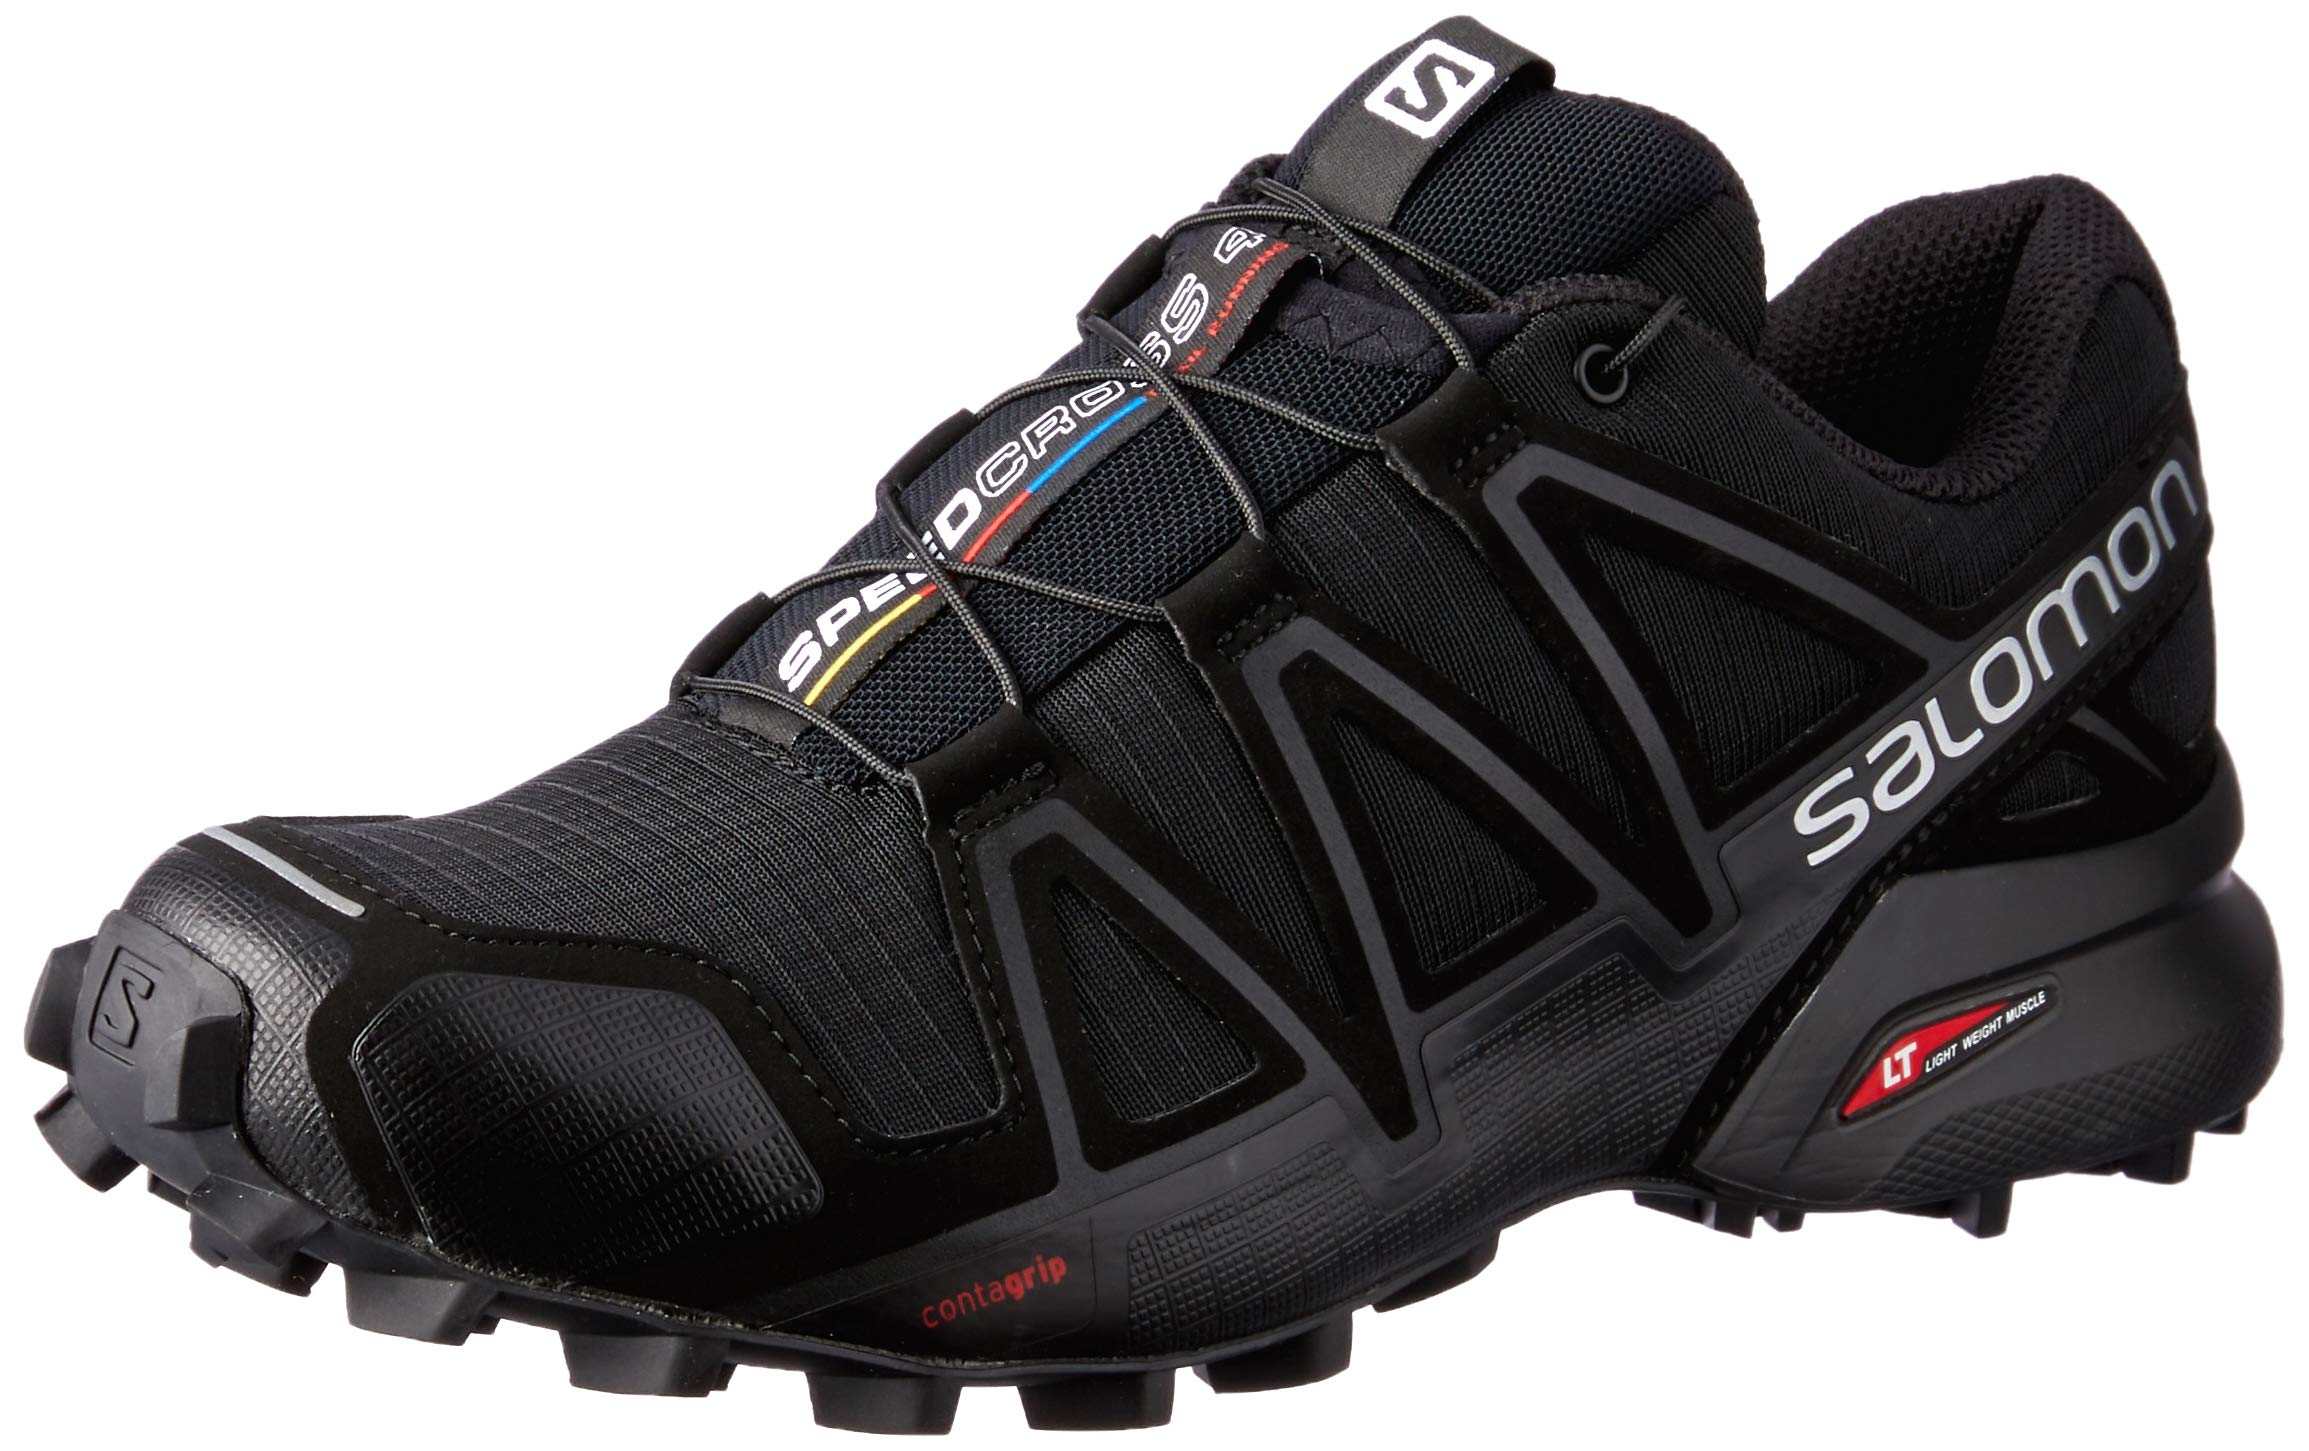 SALOMON Women's Speedcross 4 W Trail Runner, Black Metallic, 9.5 M US by SALOMON